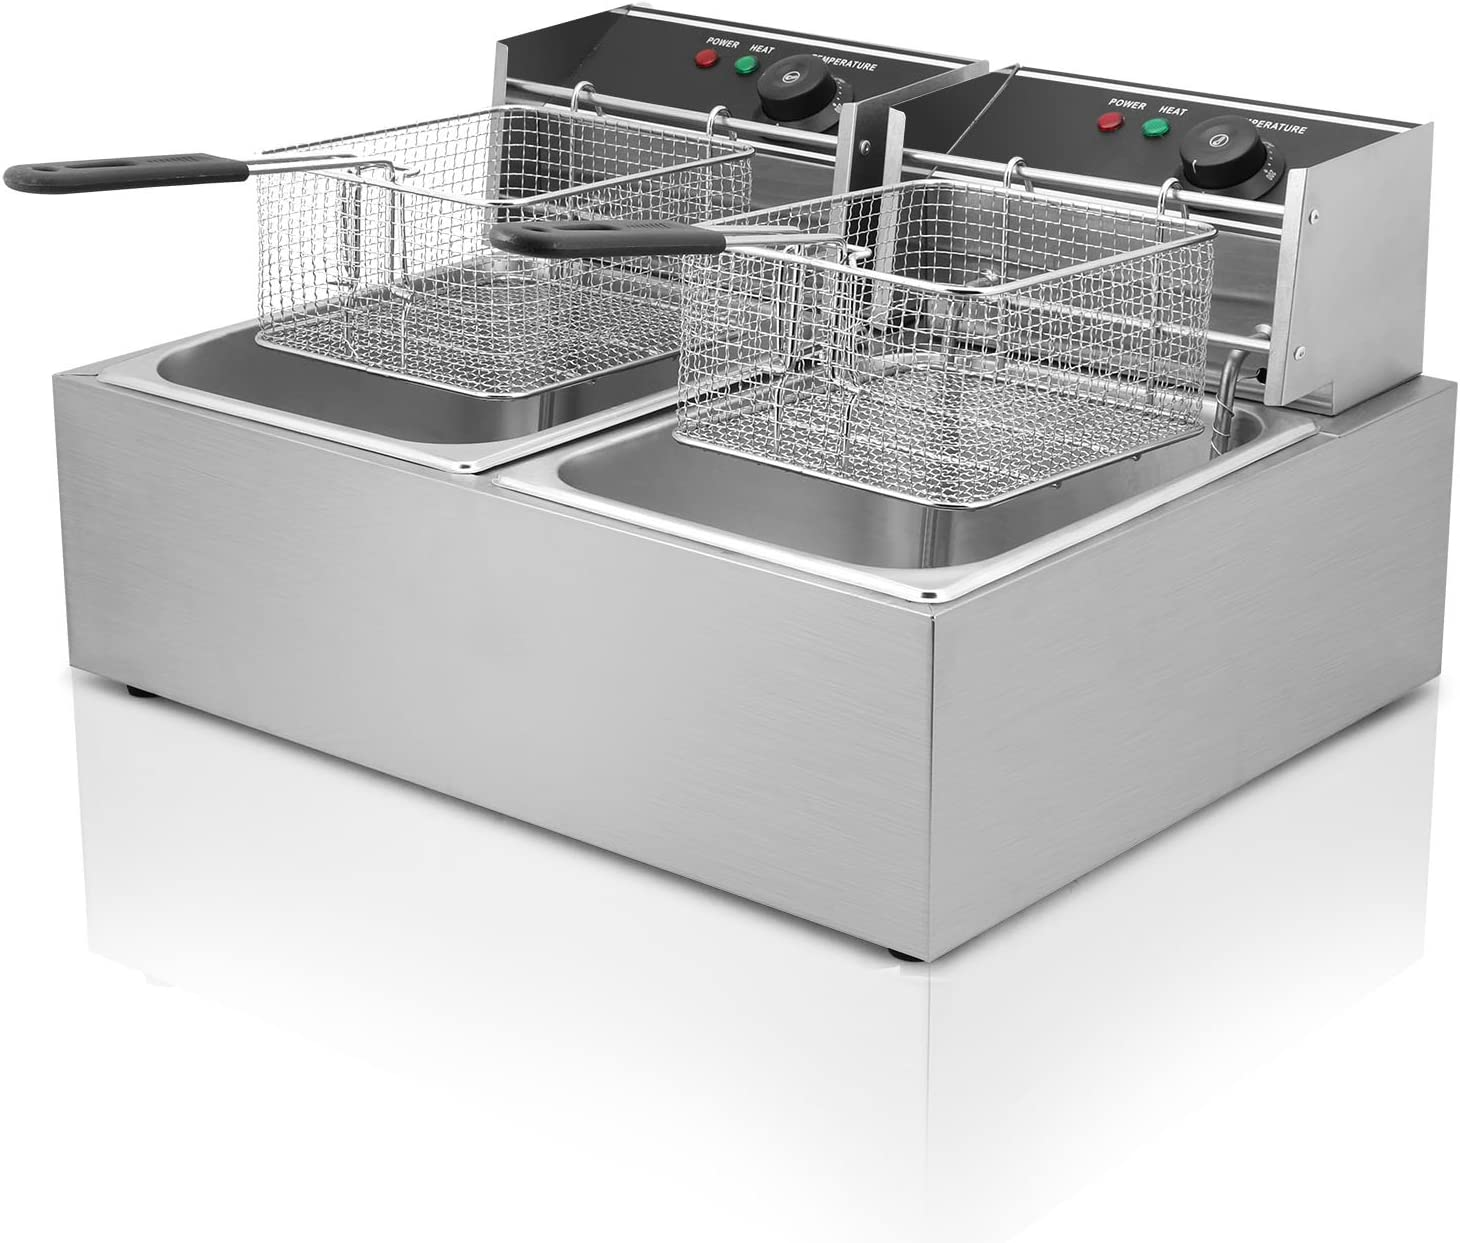 KITGARN 2x10L Deep Fryer Stainless Steel Commercial Twin Double Tank 5000W Restaurant Grade Electric Chip Fryer (20L) 12l Dual Tank Yb-82a